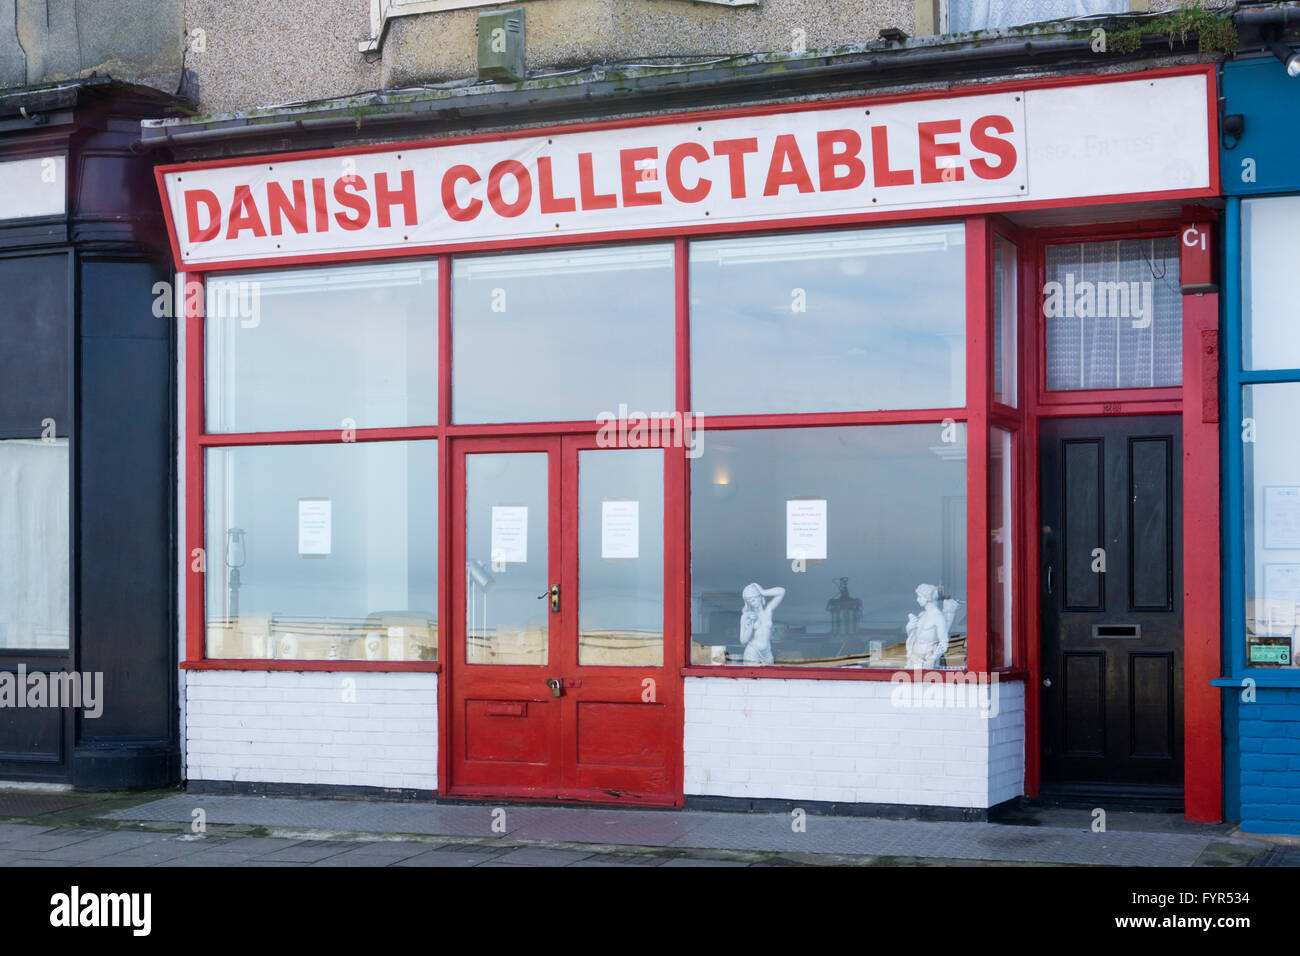 Danish Collectables in Margate, Kent. - Stock Image